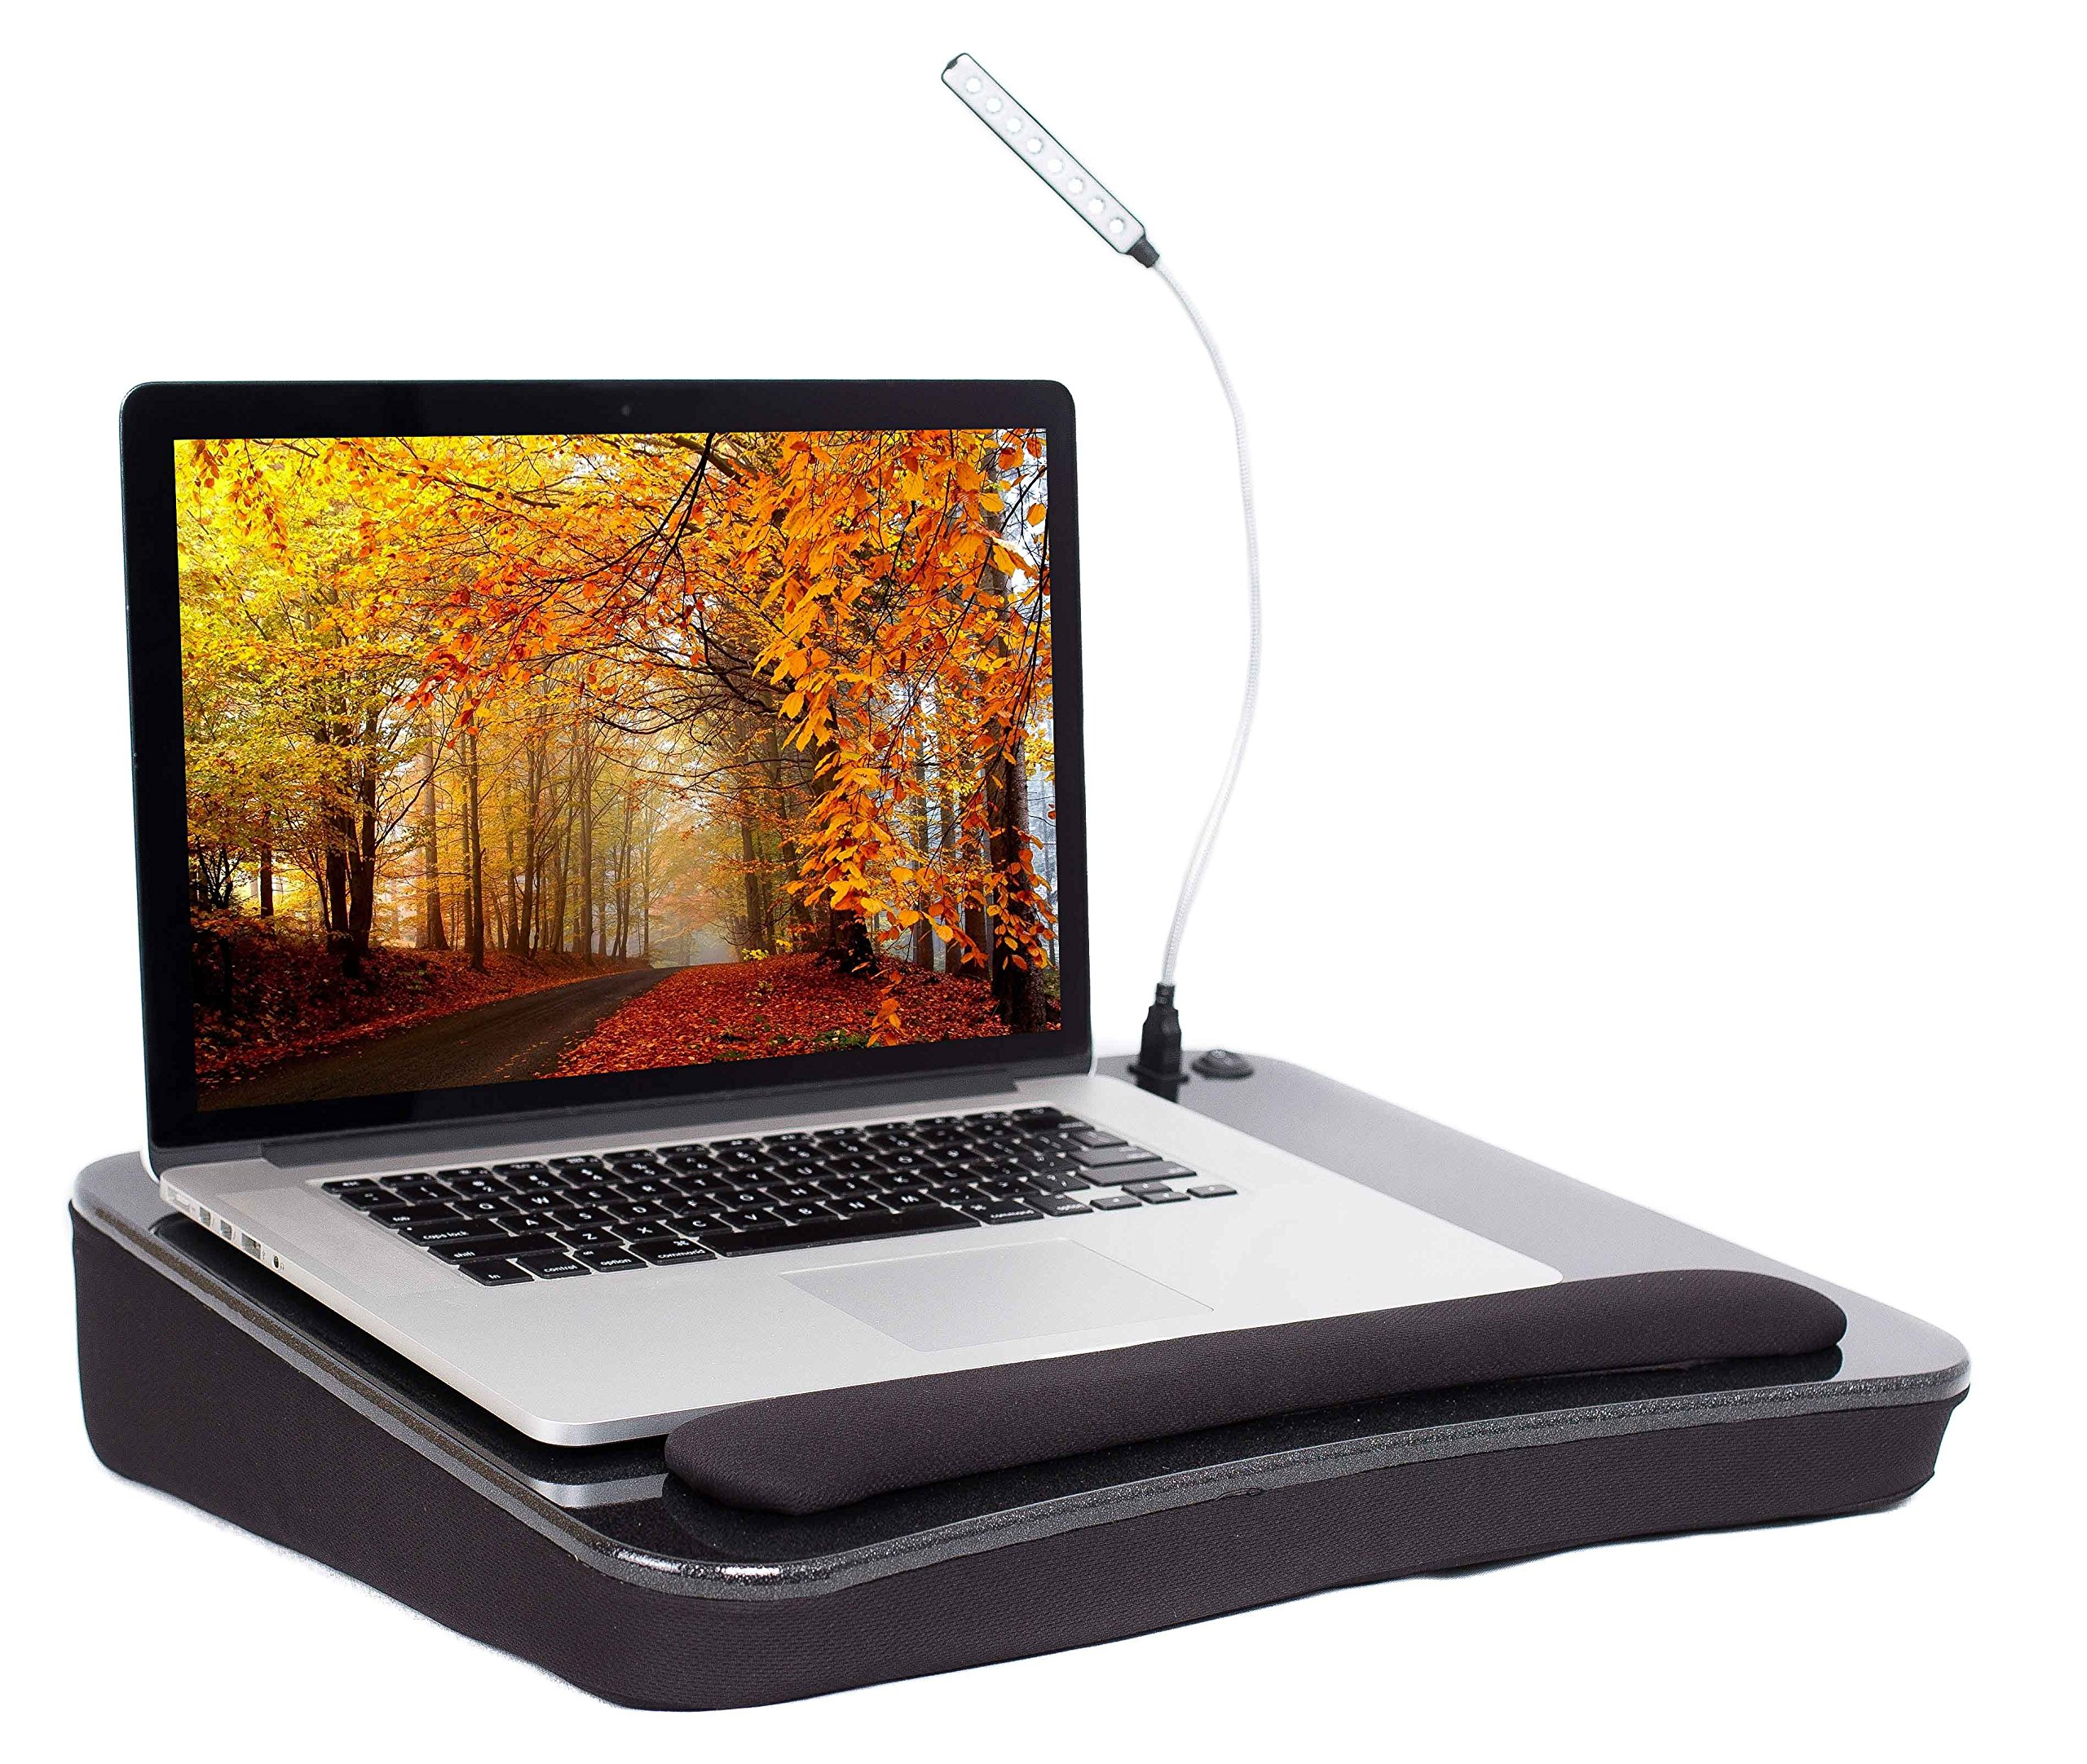 Sofia + Sam Lap Desk with USB Light (Black) | Memory Foam Cushion | Supports Laptops Up to 17 Inches